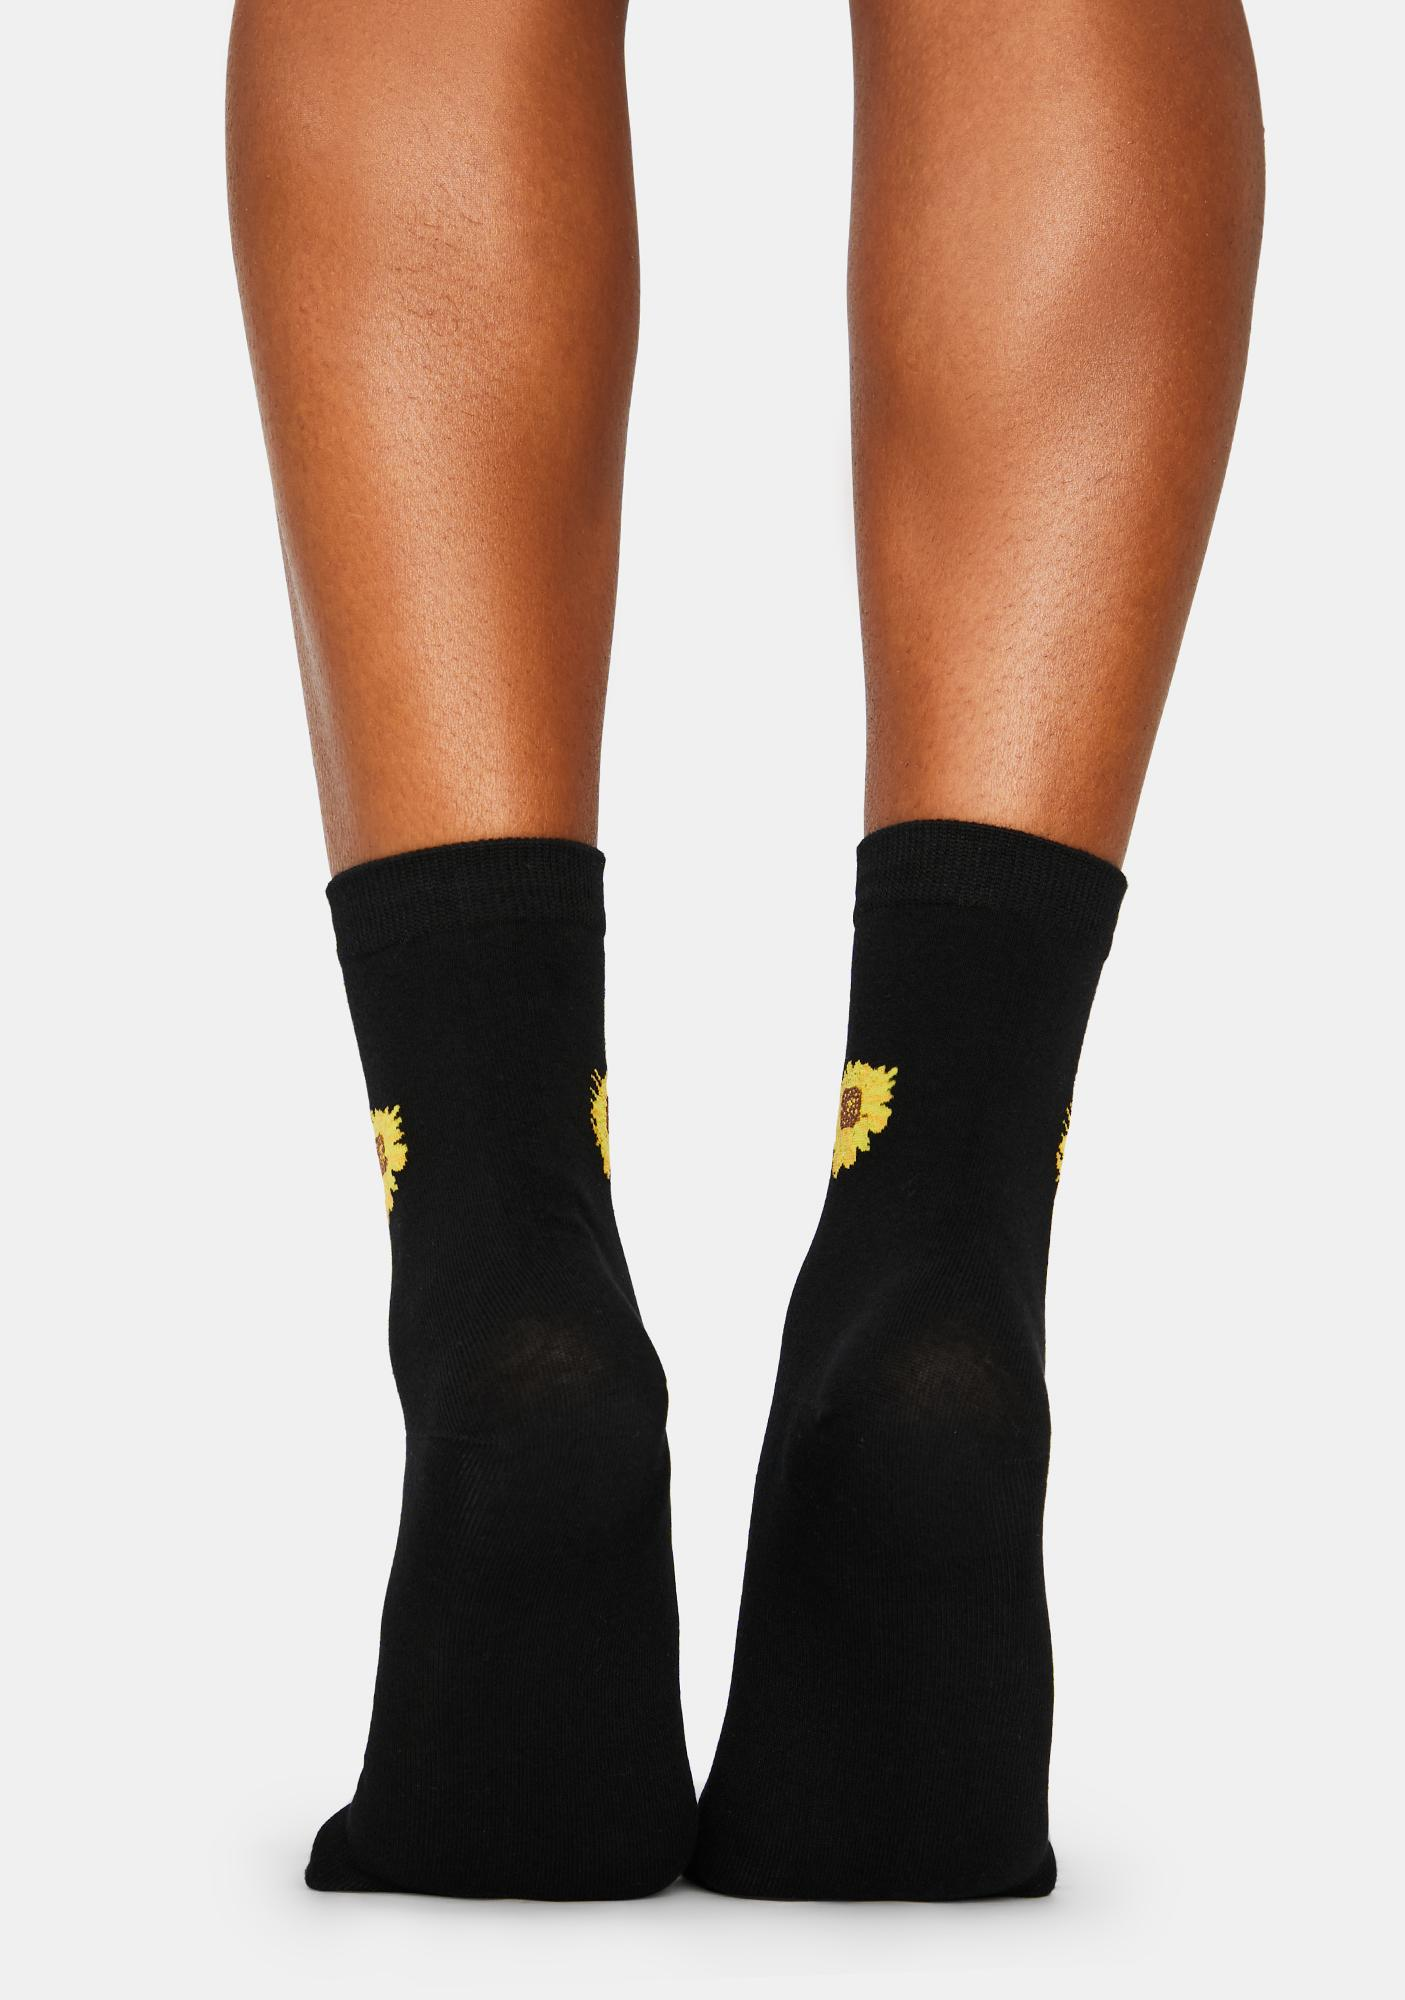 Sun Salutation Crew Socks